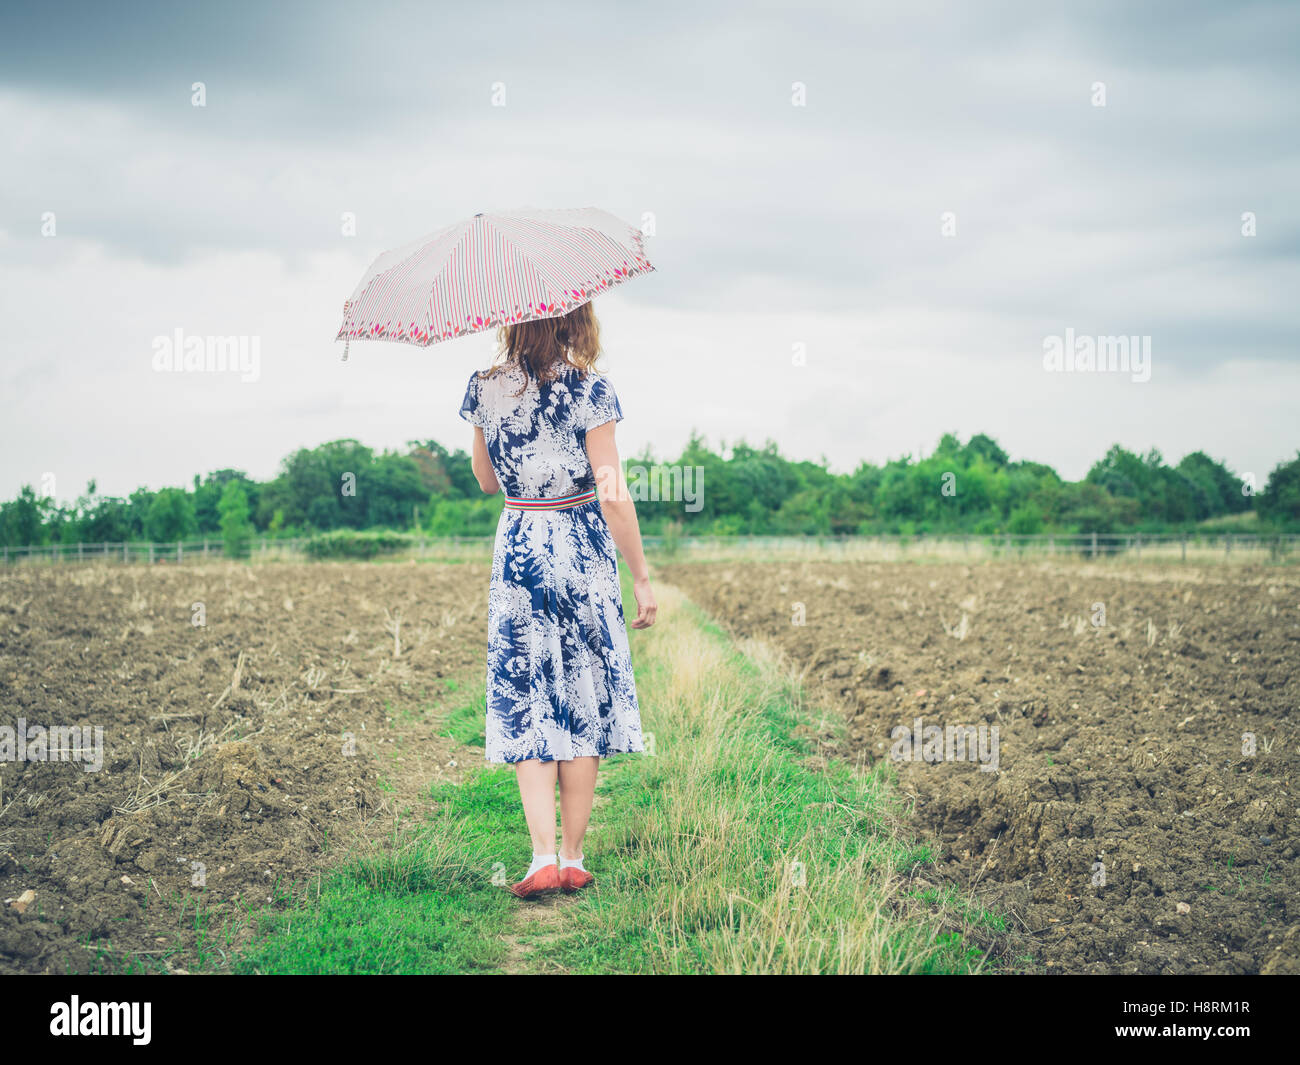 A young woman wearing a dress is walking in a barren field with an umbrella - Stock Image